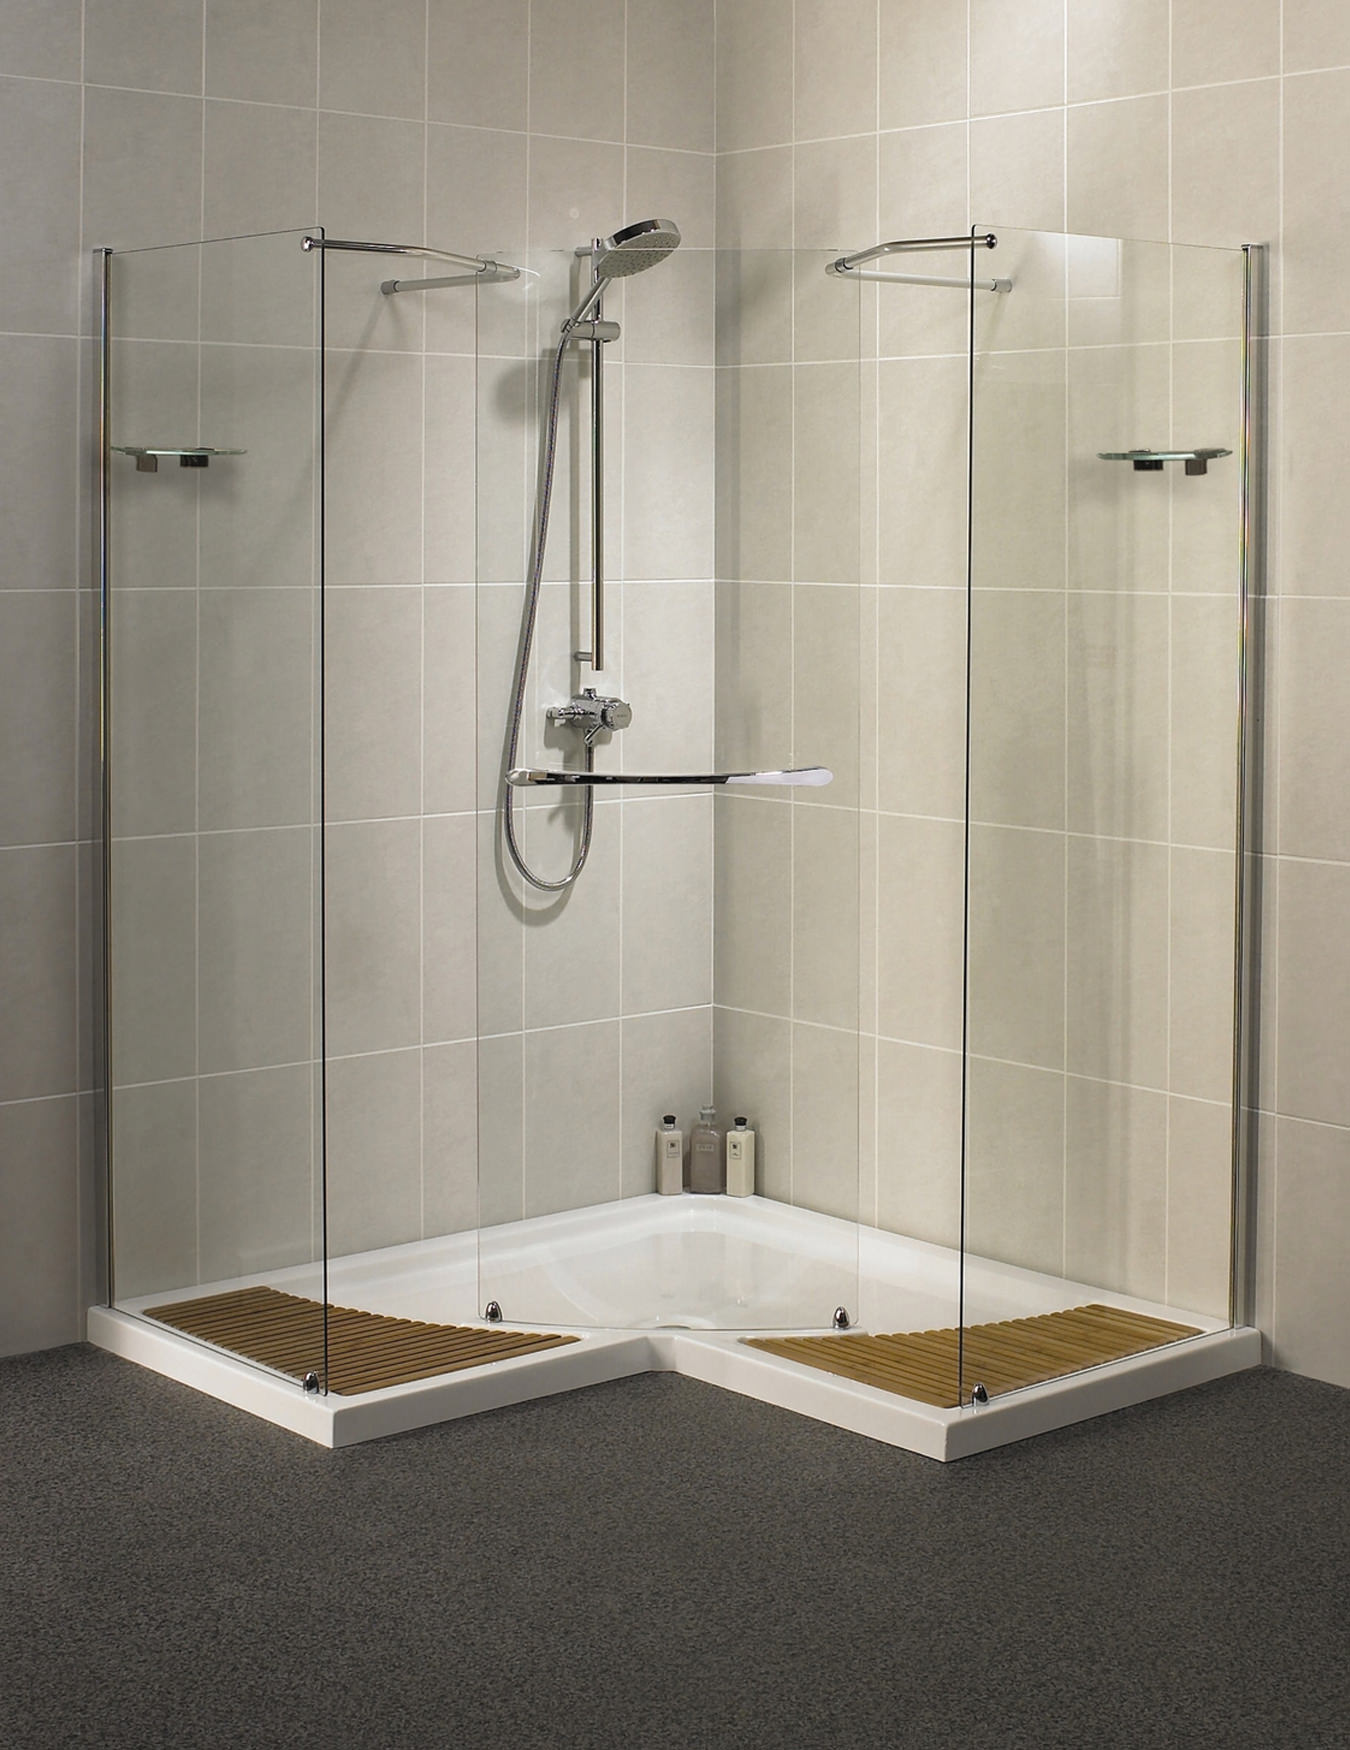 Aqualux Aquaspace Corner Walk Through Shower Enclosure 1500mm